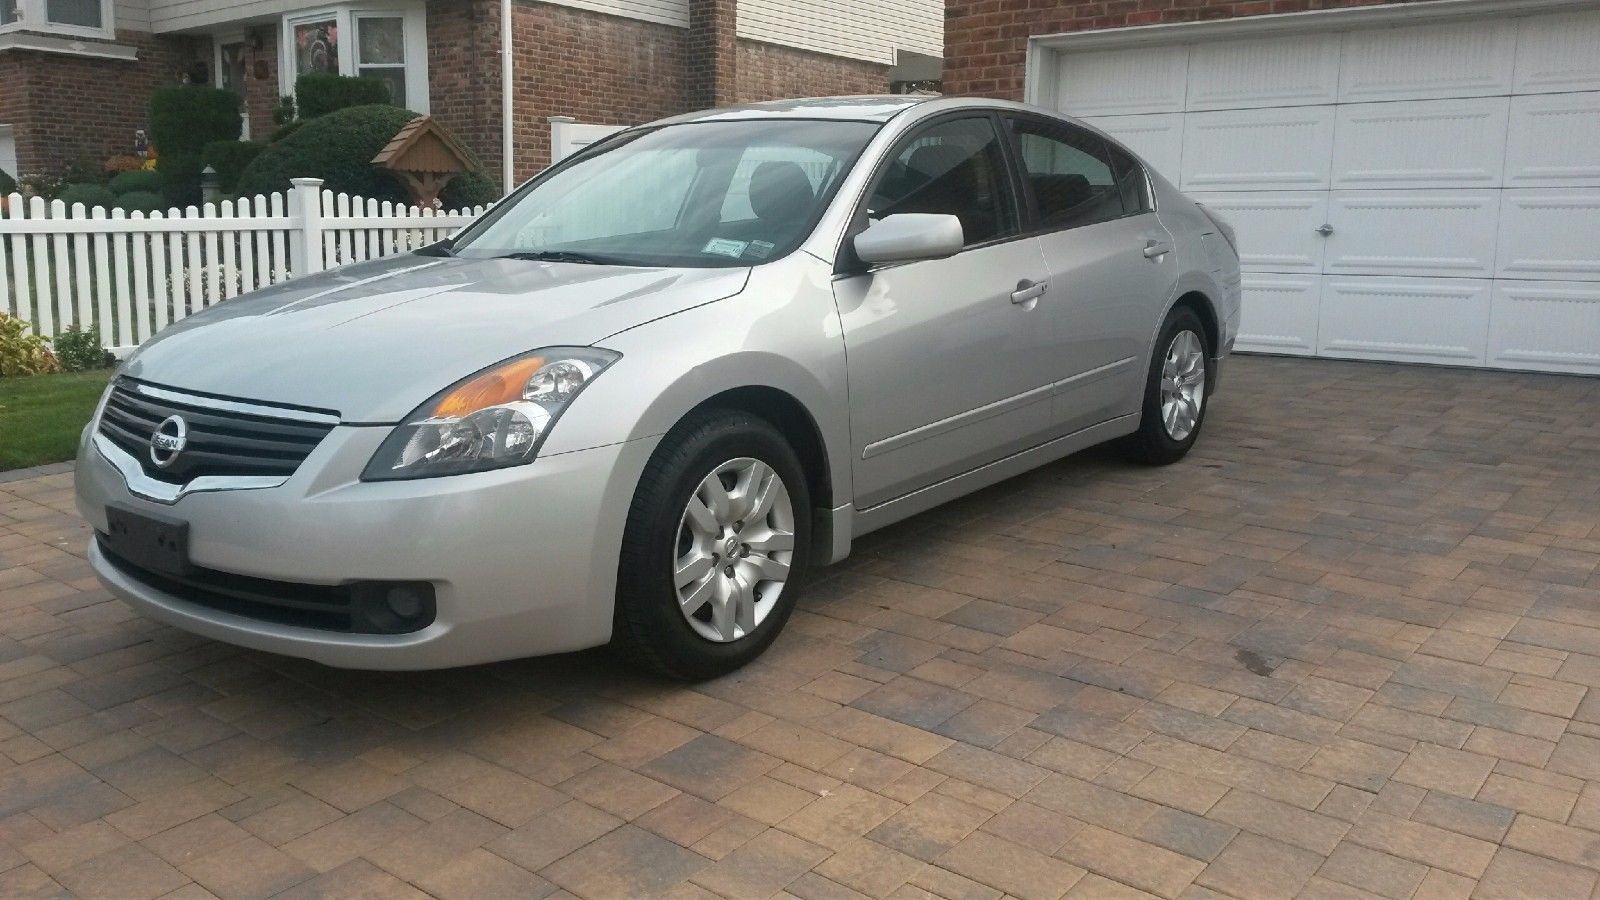 Pin By Car Accessories On Related Pins Nissan Altima